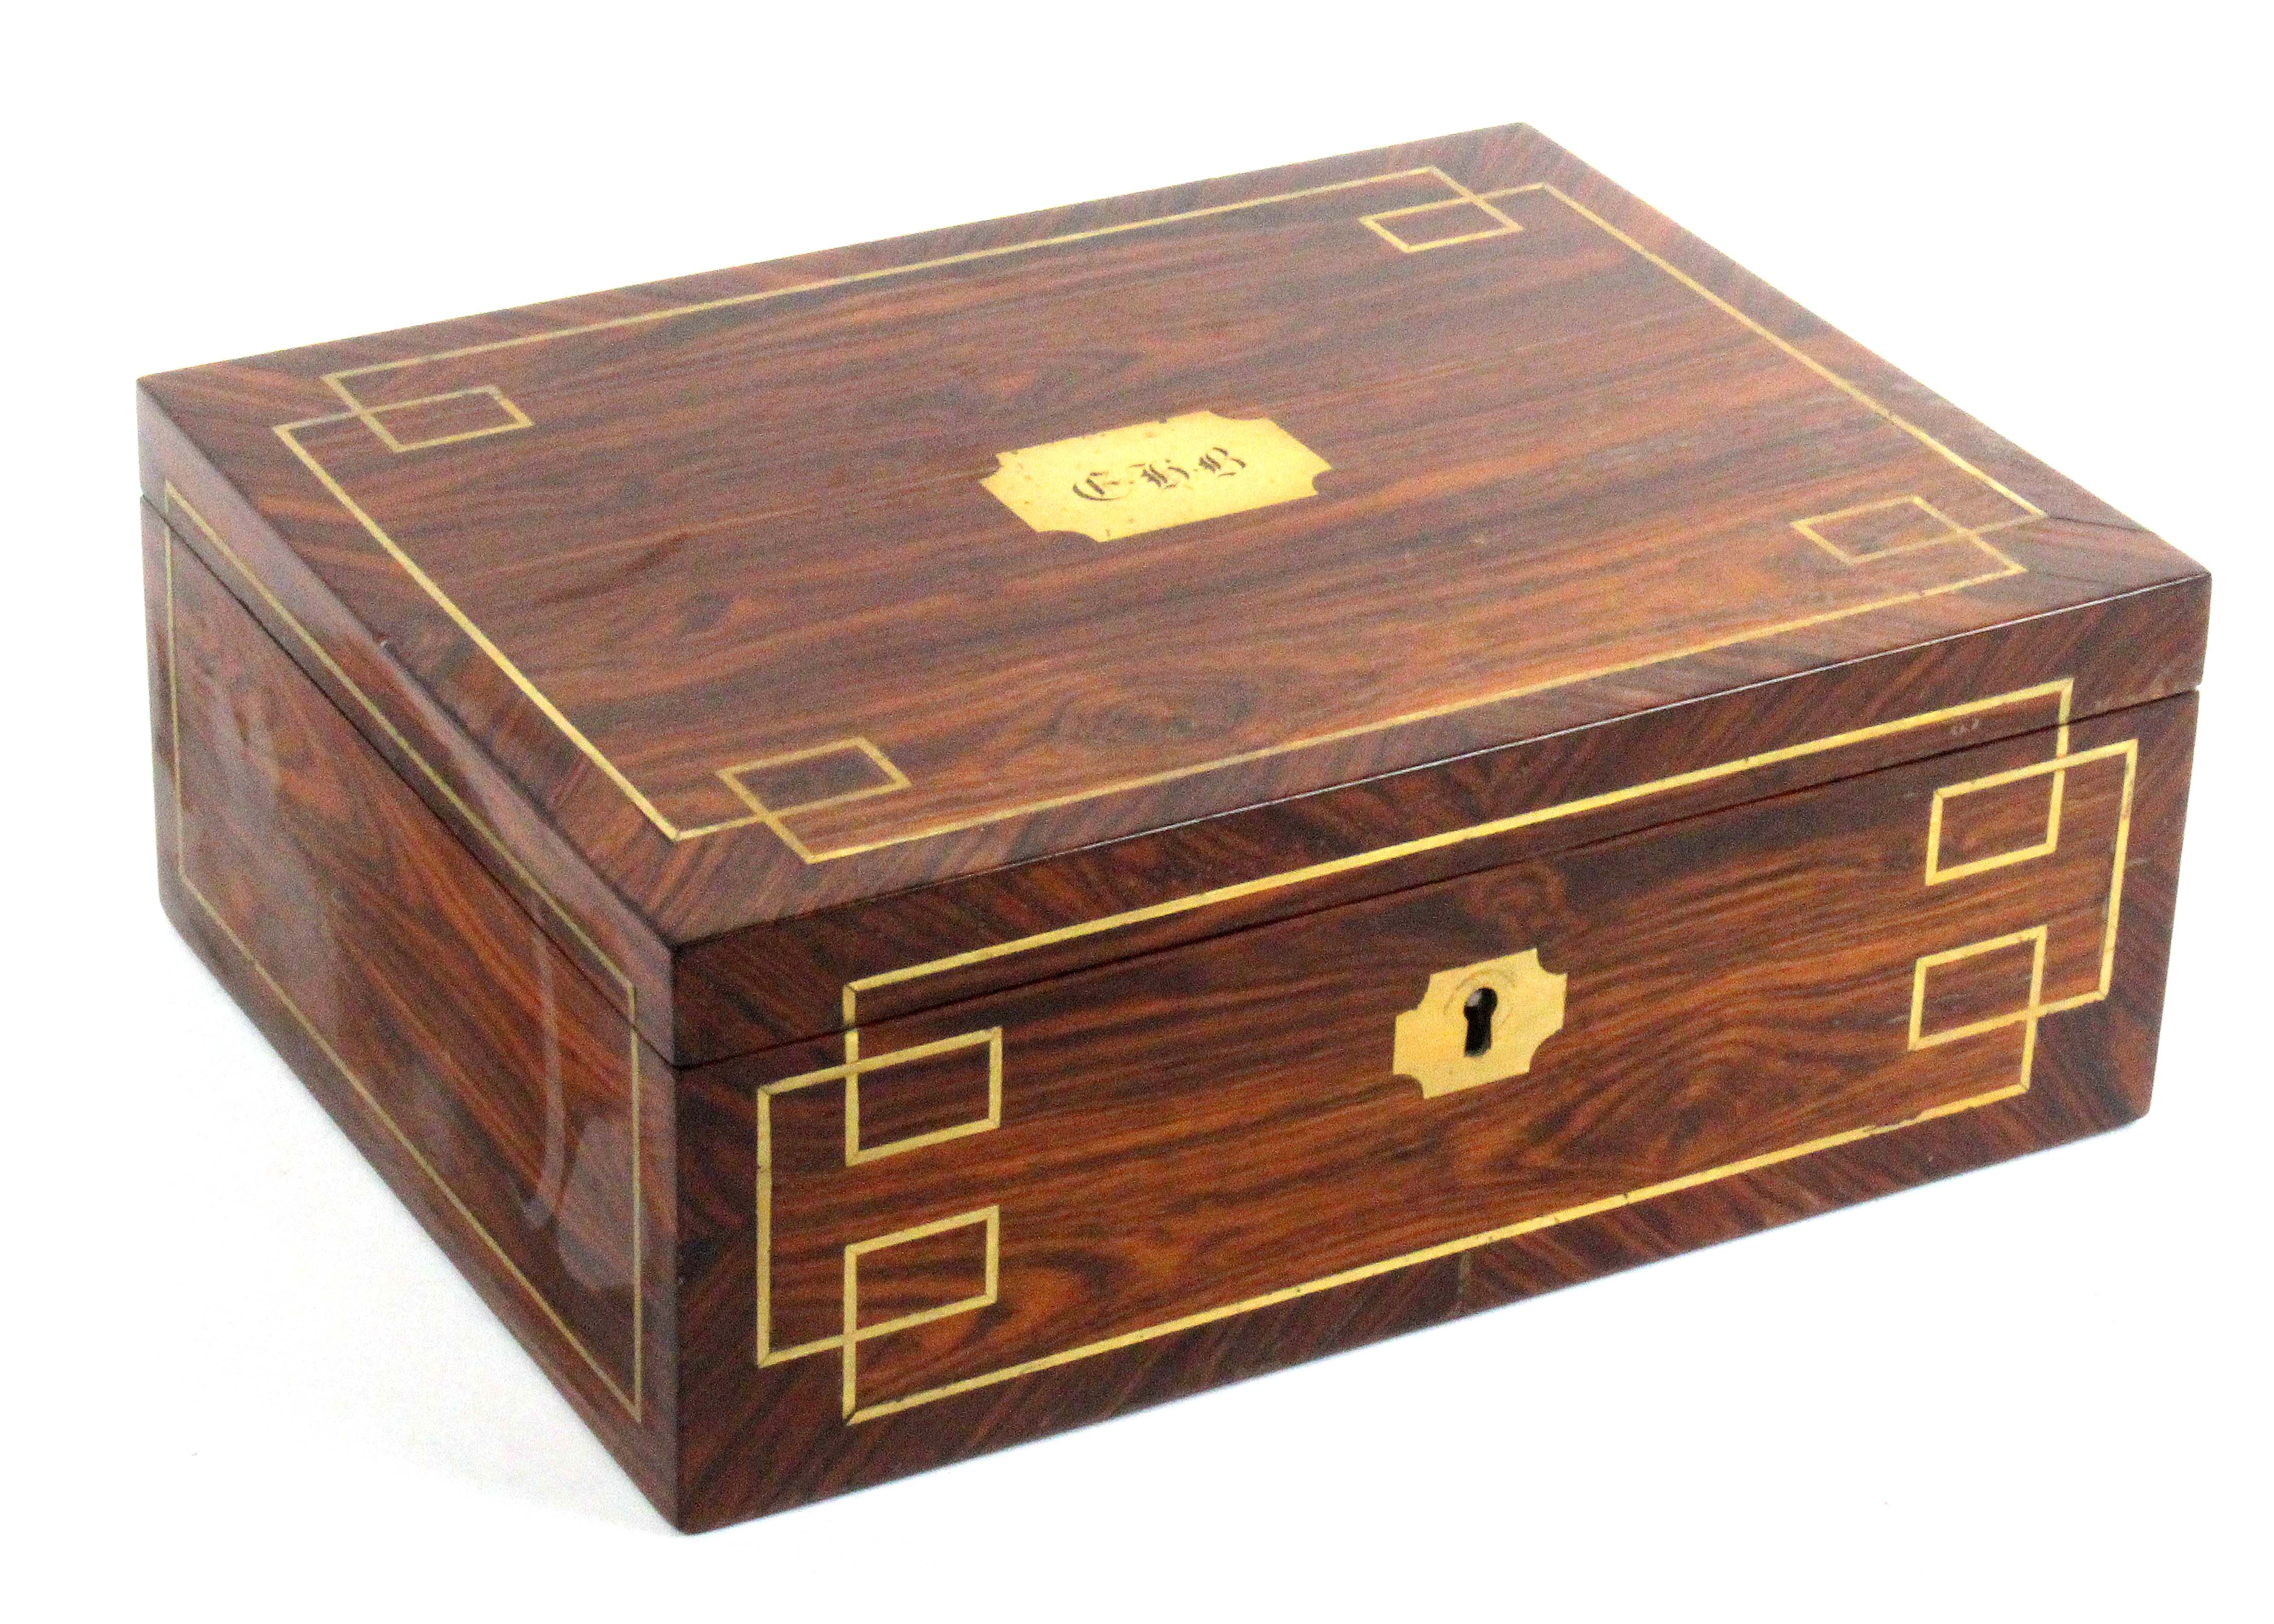 A finely fitted kingwood and brass inlaid small format sewing box, circa 1835, of rectangular